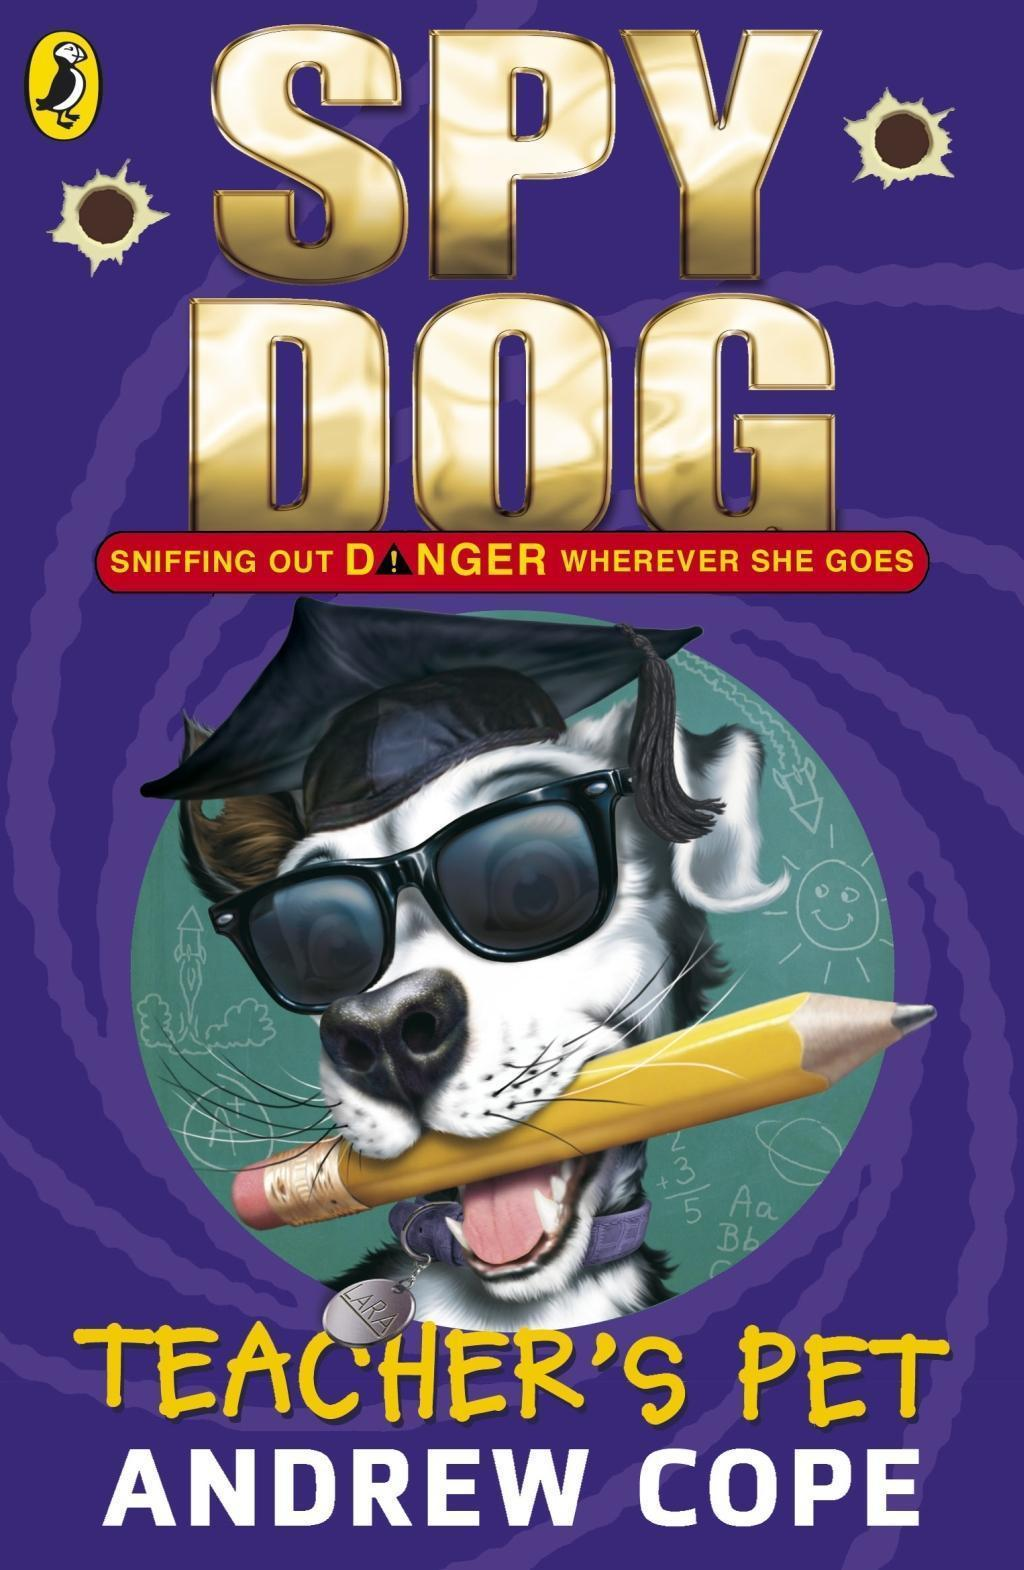 Spy Dog Teacher's Pet